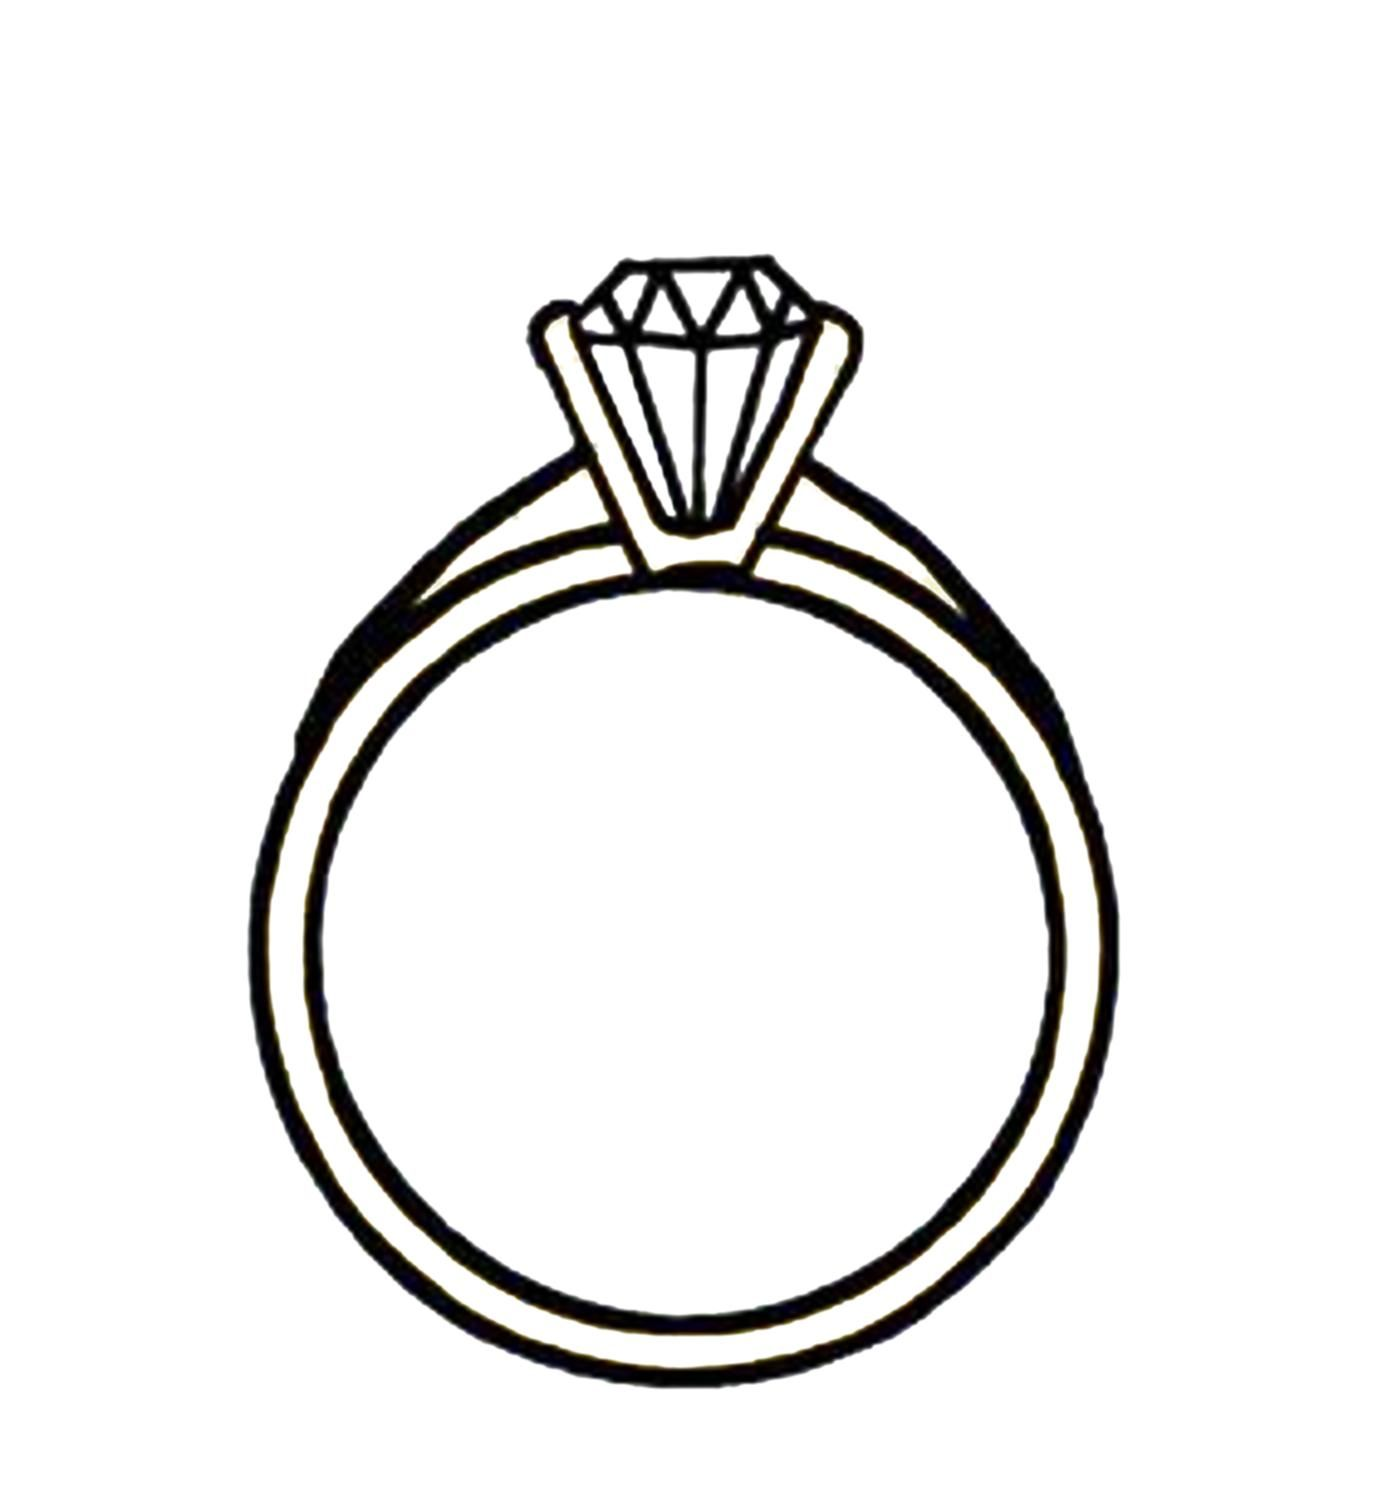 Rings Clipart.